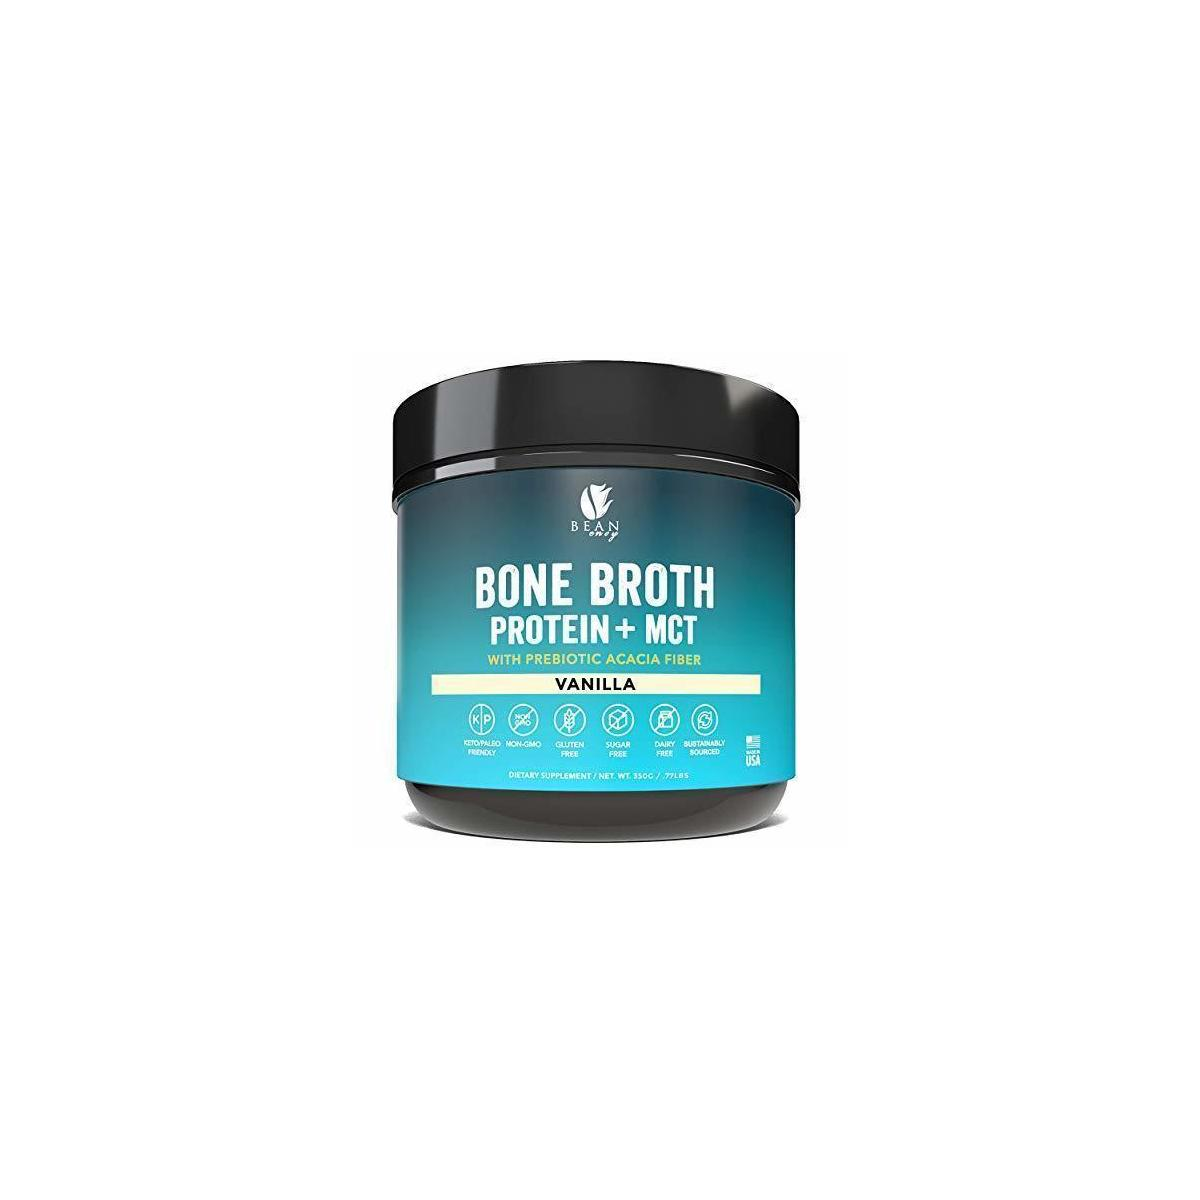 Bean Envy Bone Broth Protein Powder + MCT Oil + Prebiotic Acacia Fiber for Joint Protection, Better Digestion, Energy Boost, Weight Loss, and Sleep - Vanilla